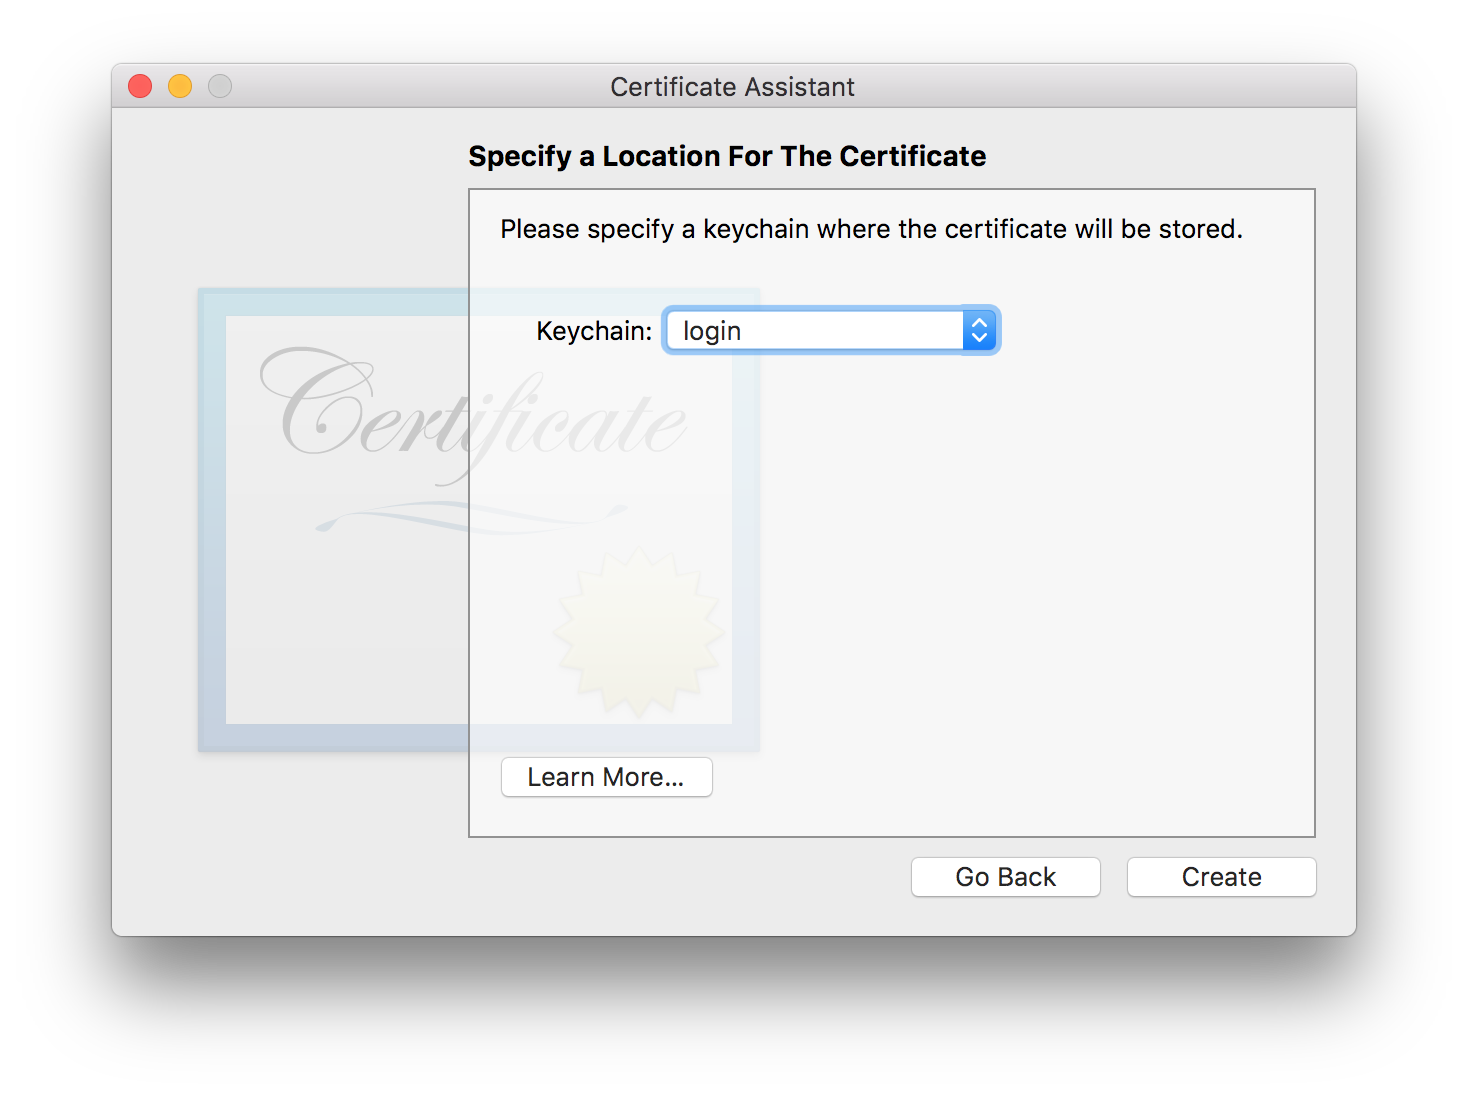 Specify a Keychain Location for the Certificate